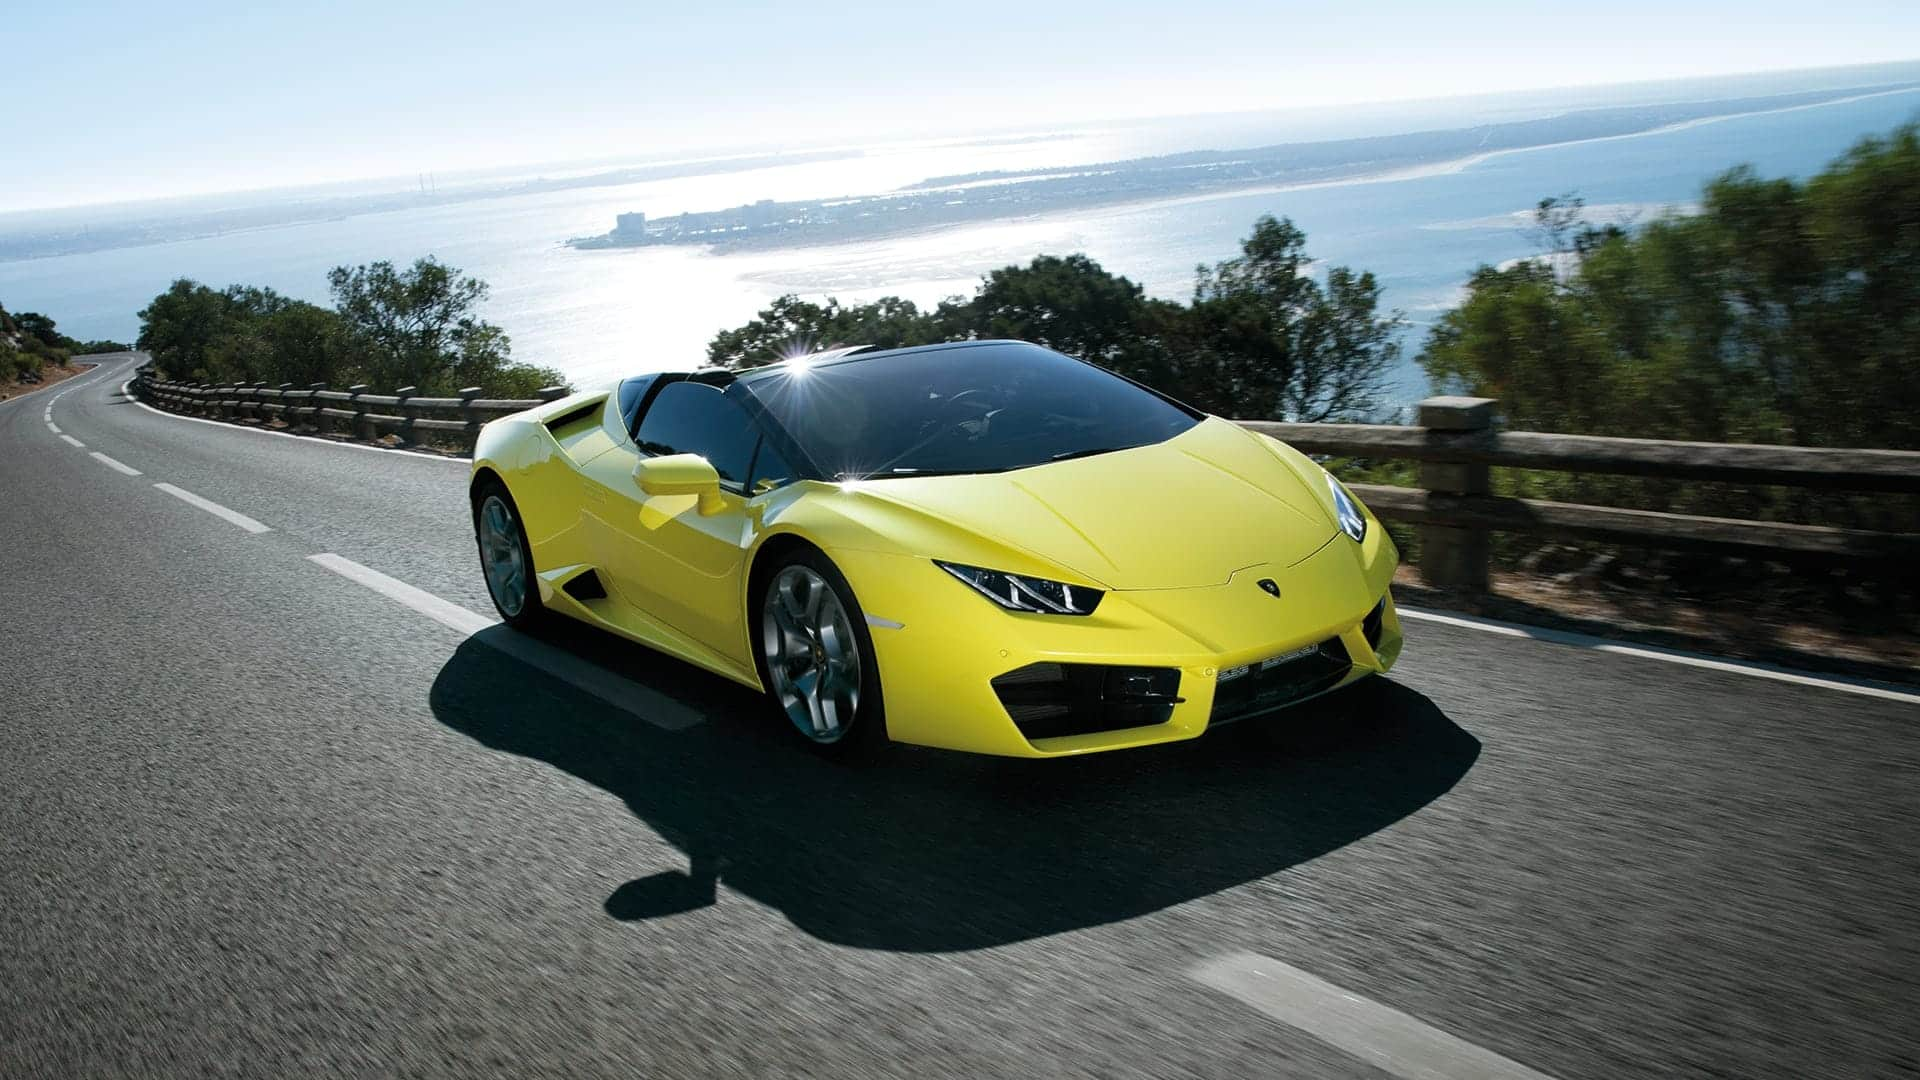 Lamborghini Huracan Spyder Car on Rent in Dubai